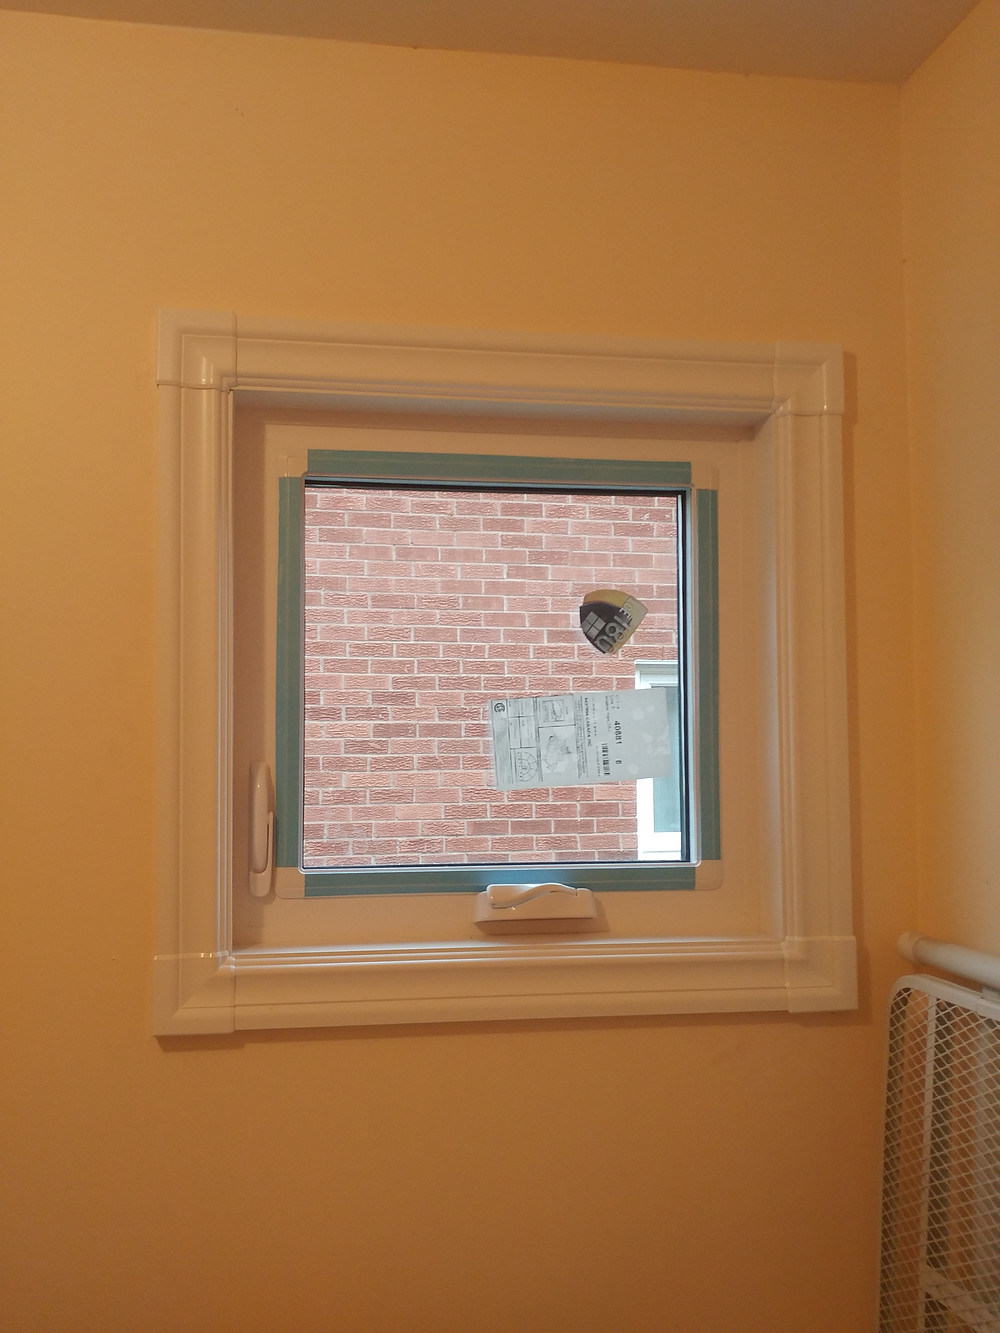 Vinyl window with vinyl casing